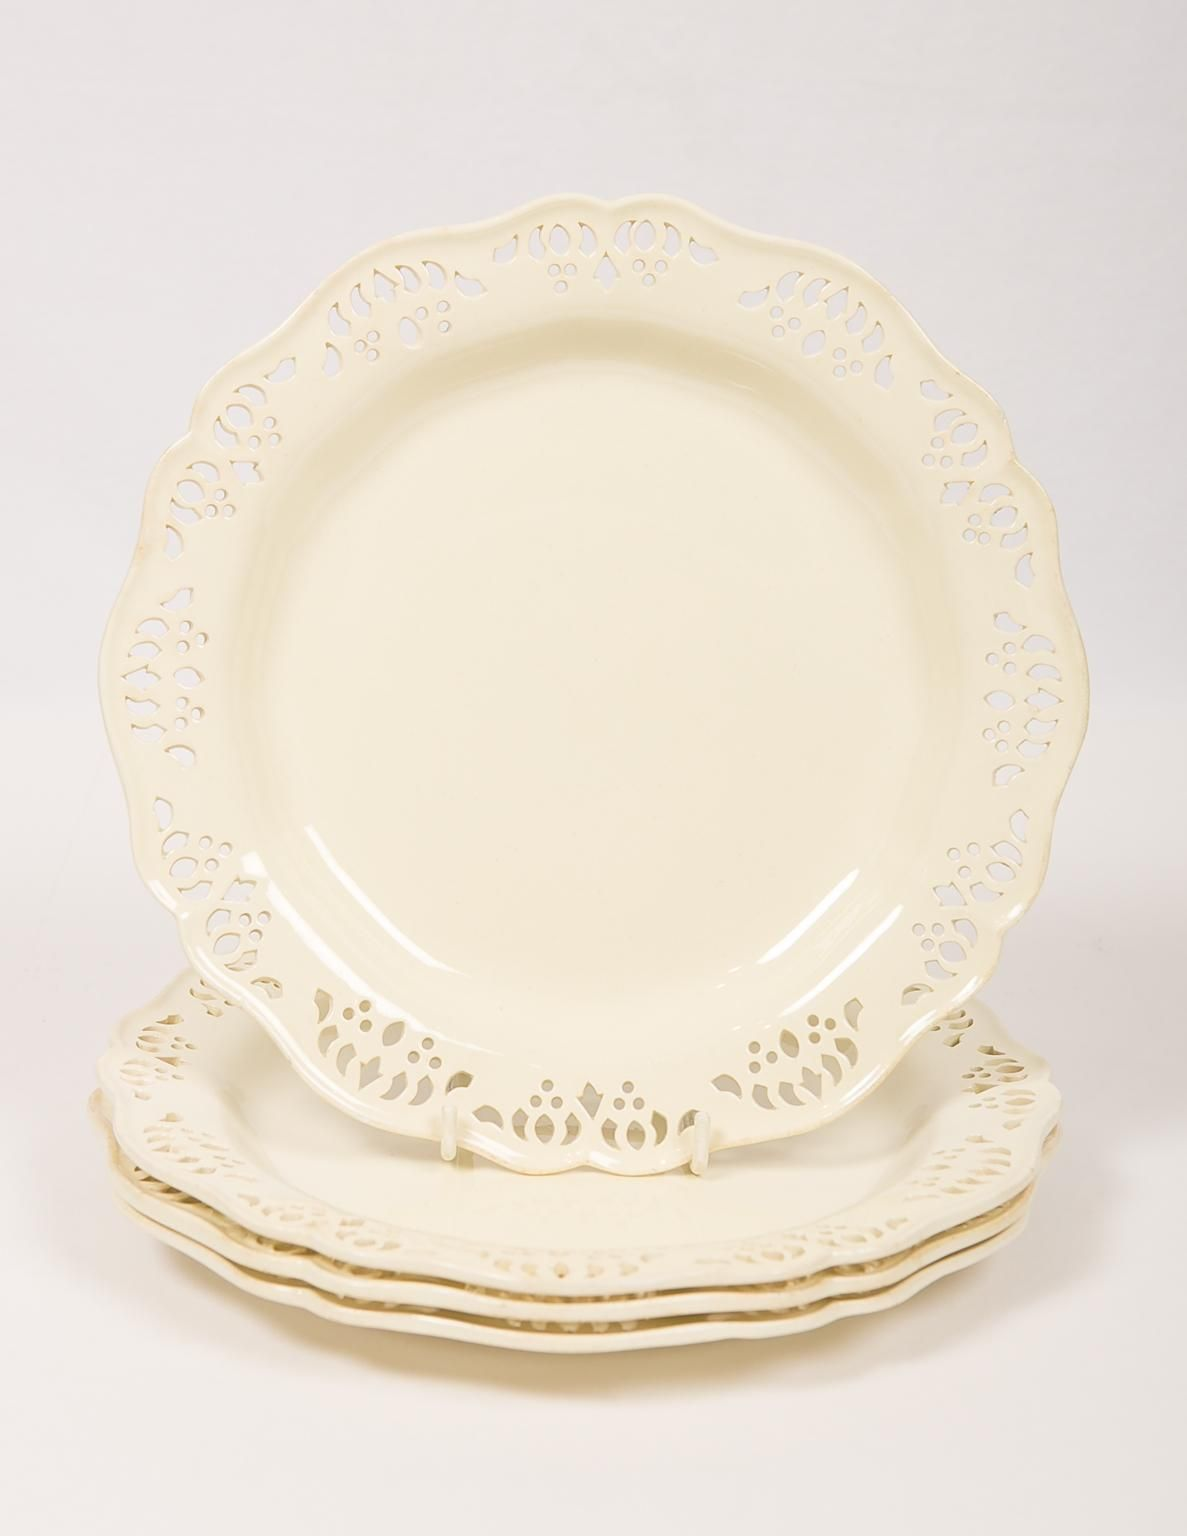 Antique Wedgwood Pierced Creamware Dishes For Sale At 1stdibs